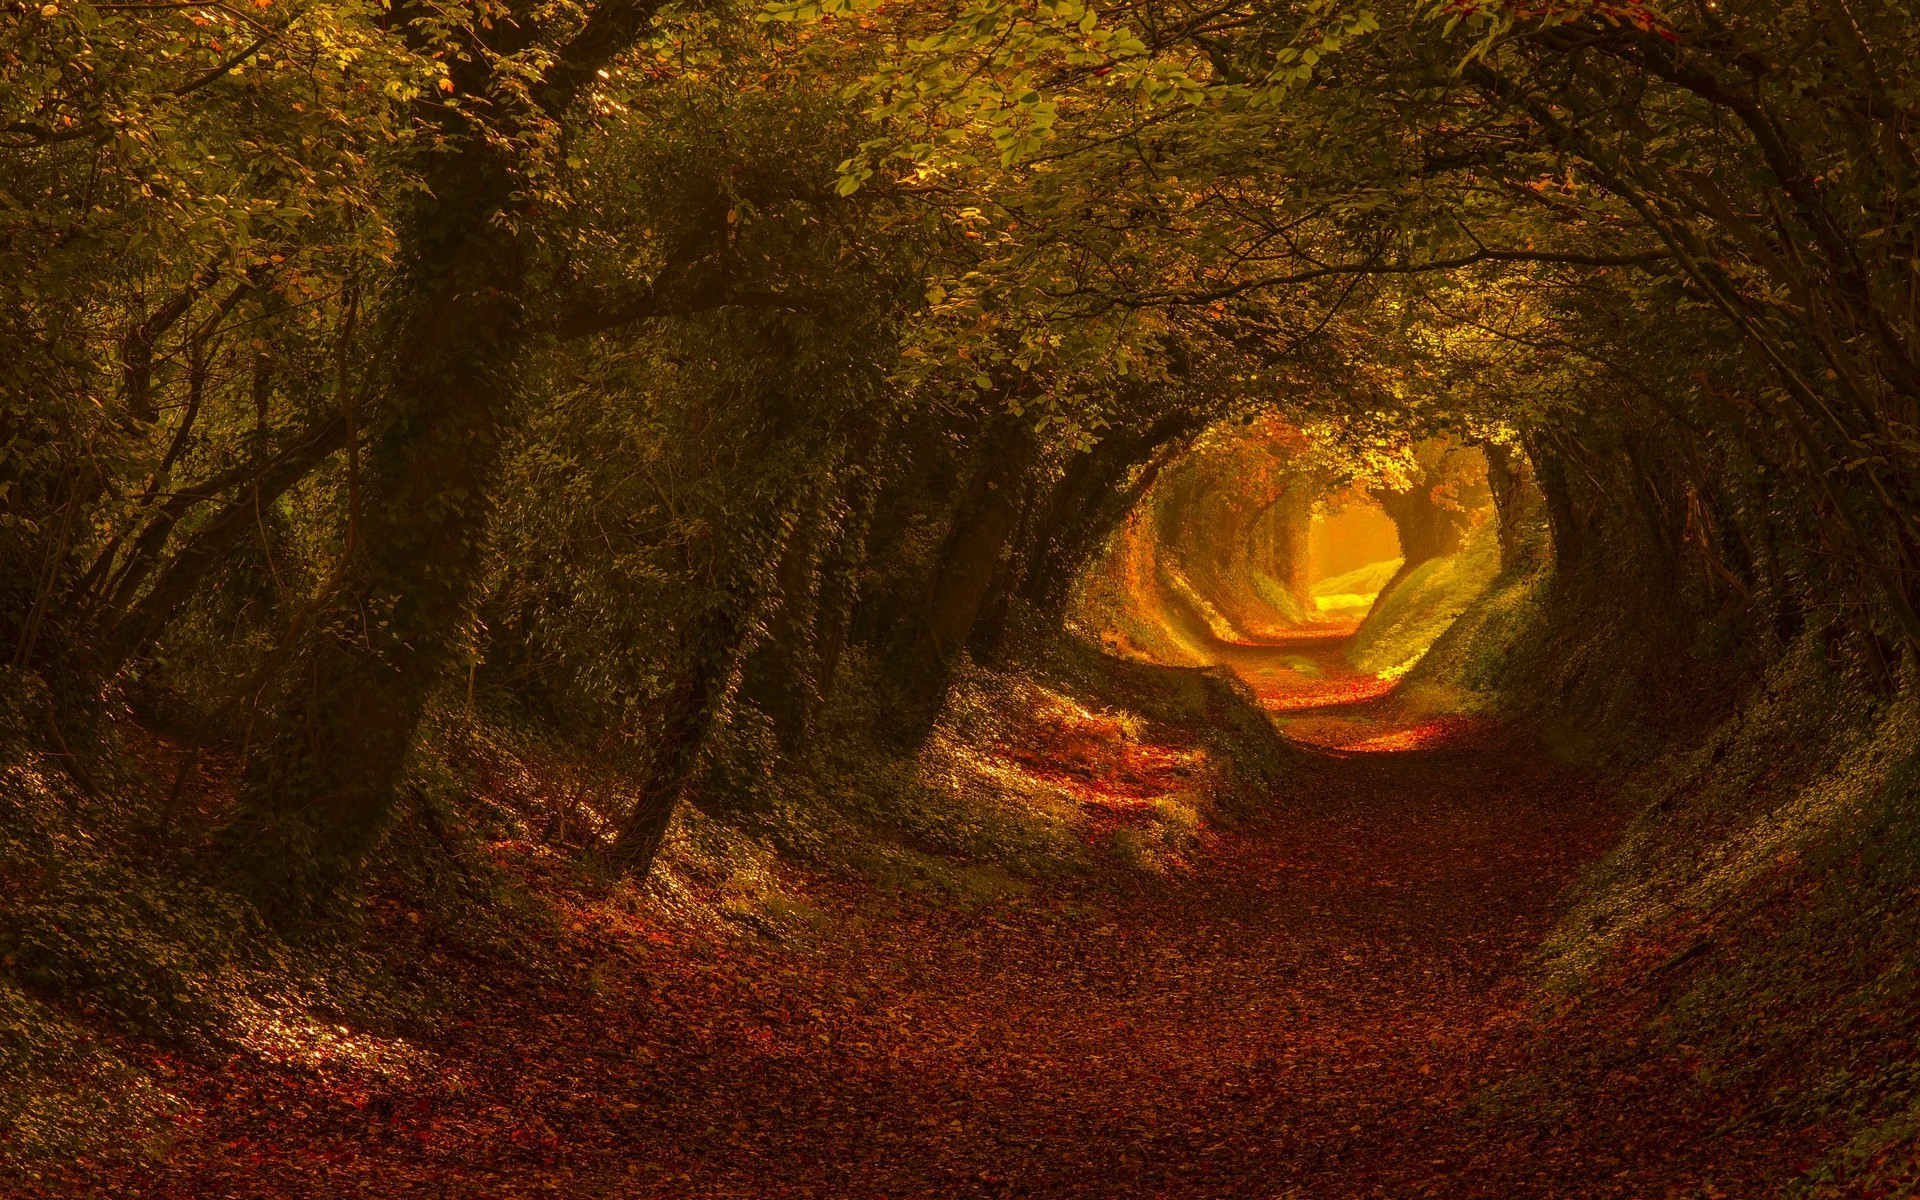 Free Desktop Wallpaper Fall Foliage Nature Trees Fall Leaves Tunnel Sunlight Landscape